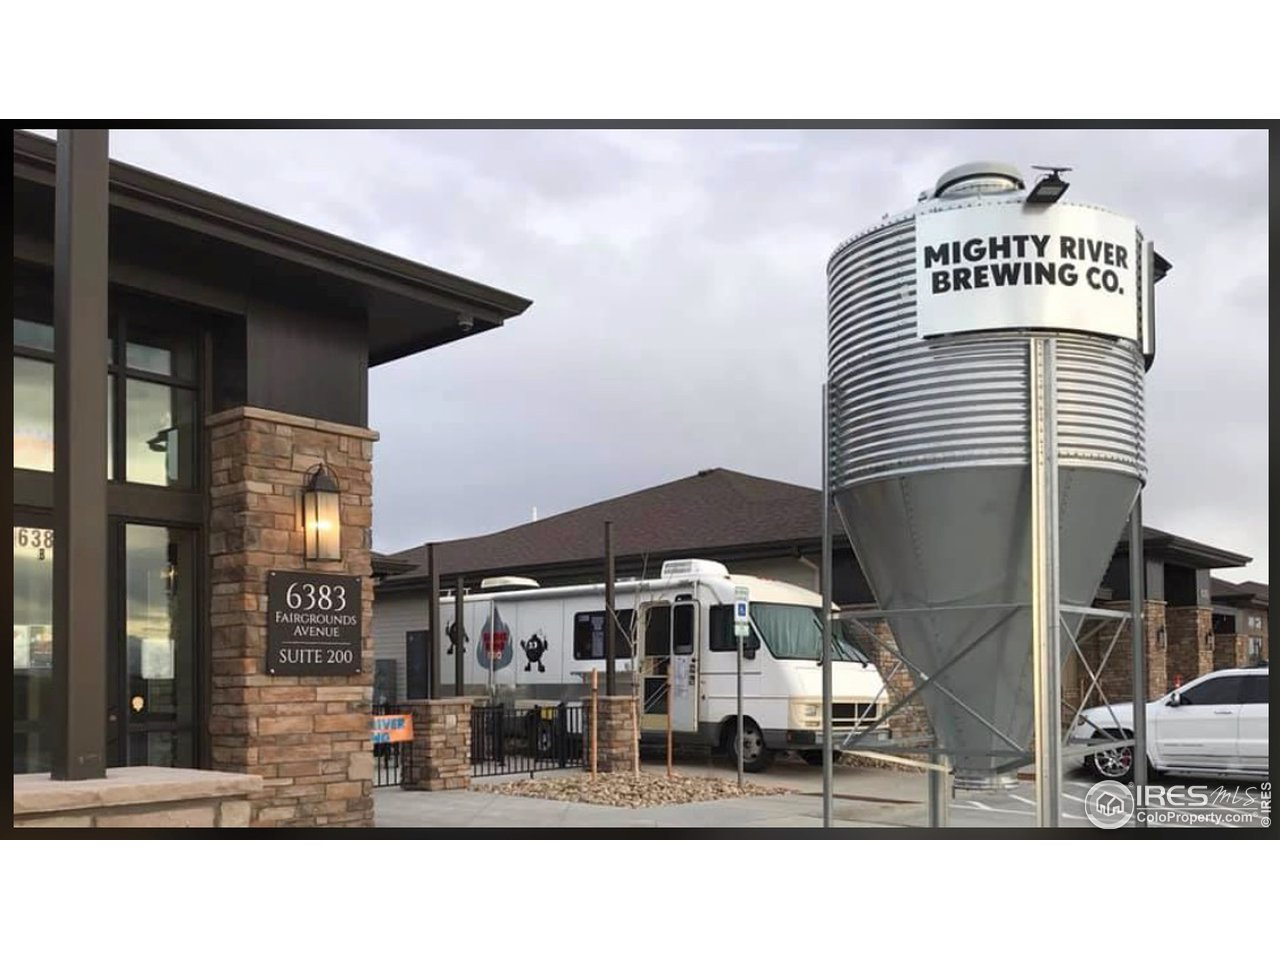 Enjoy fine dining and breweries all within walking distance from your new home!